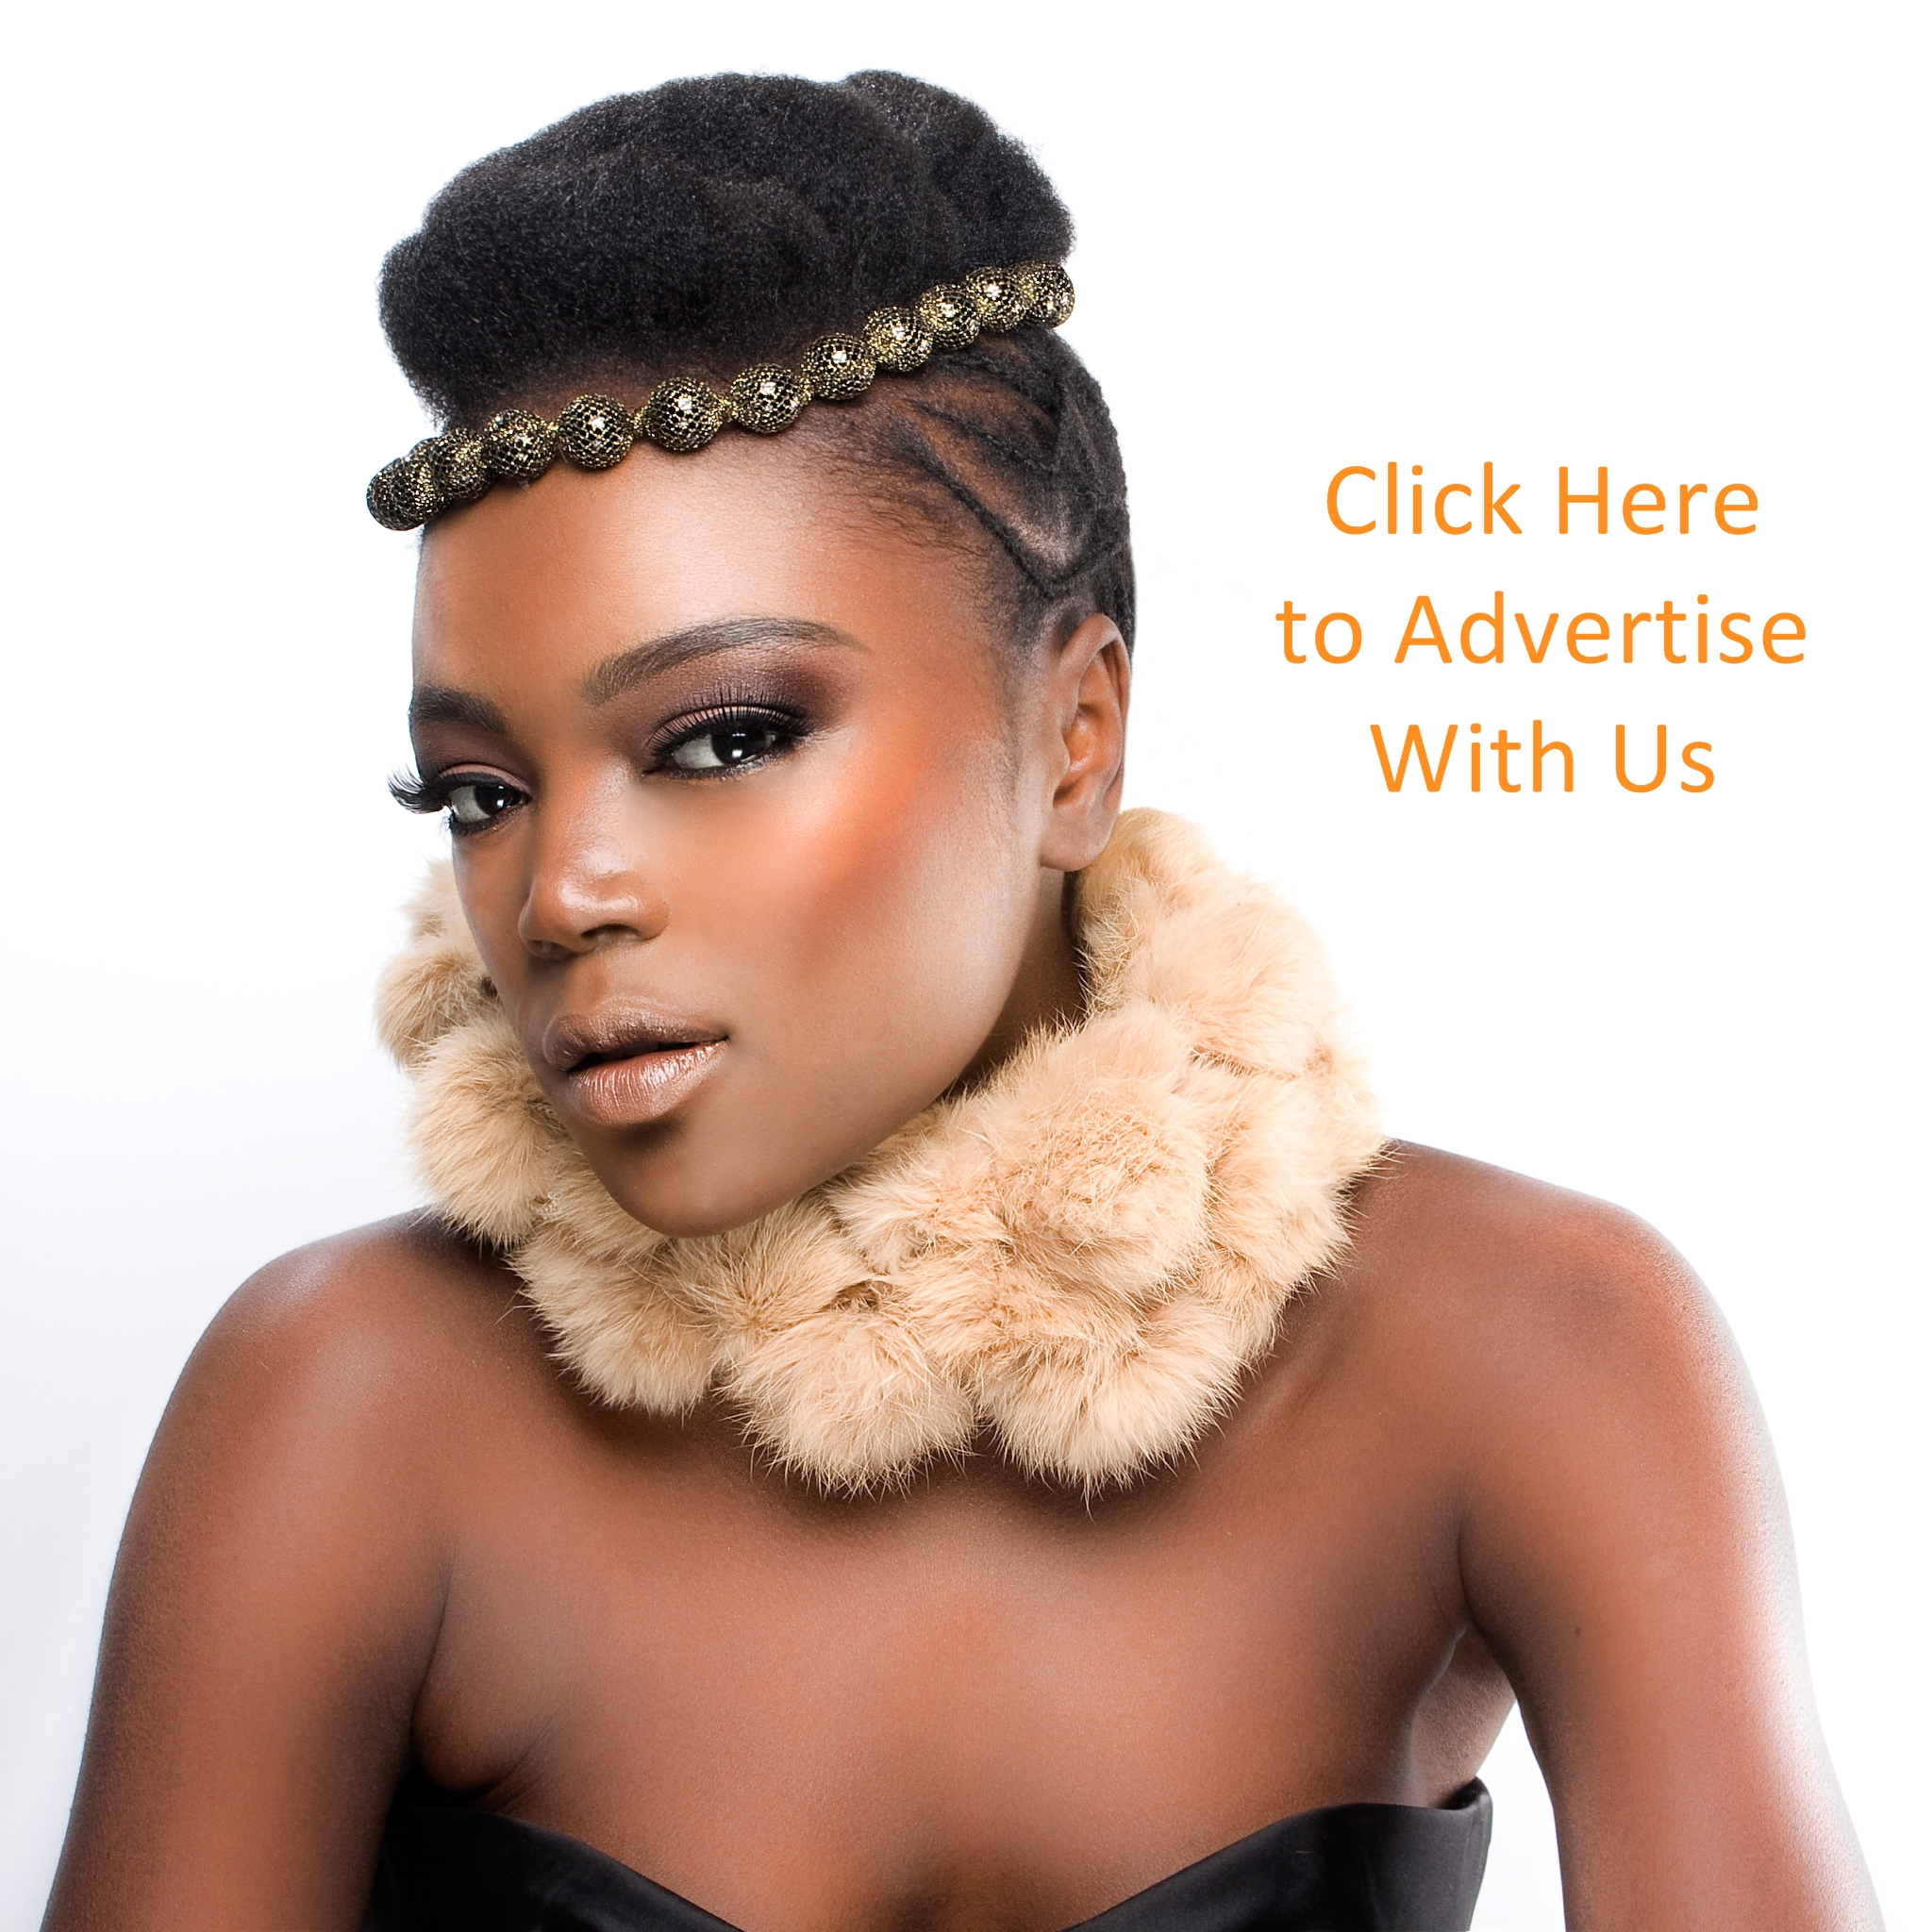 Advertise with us 5